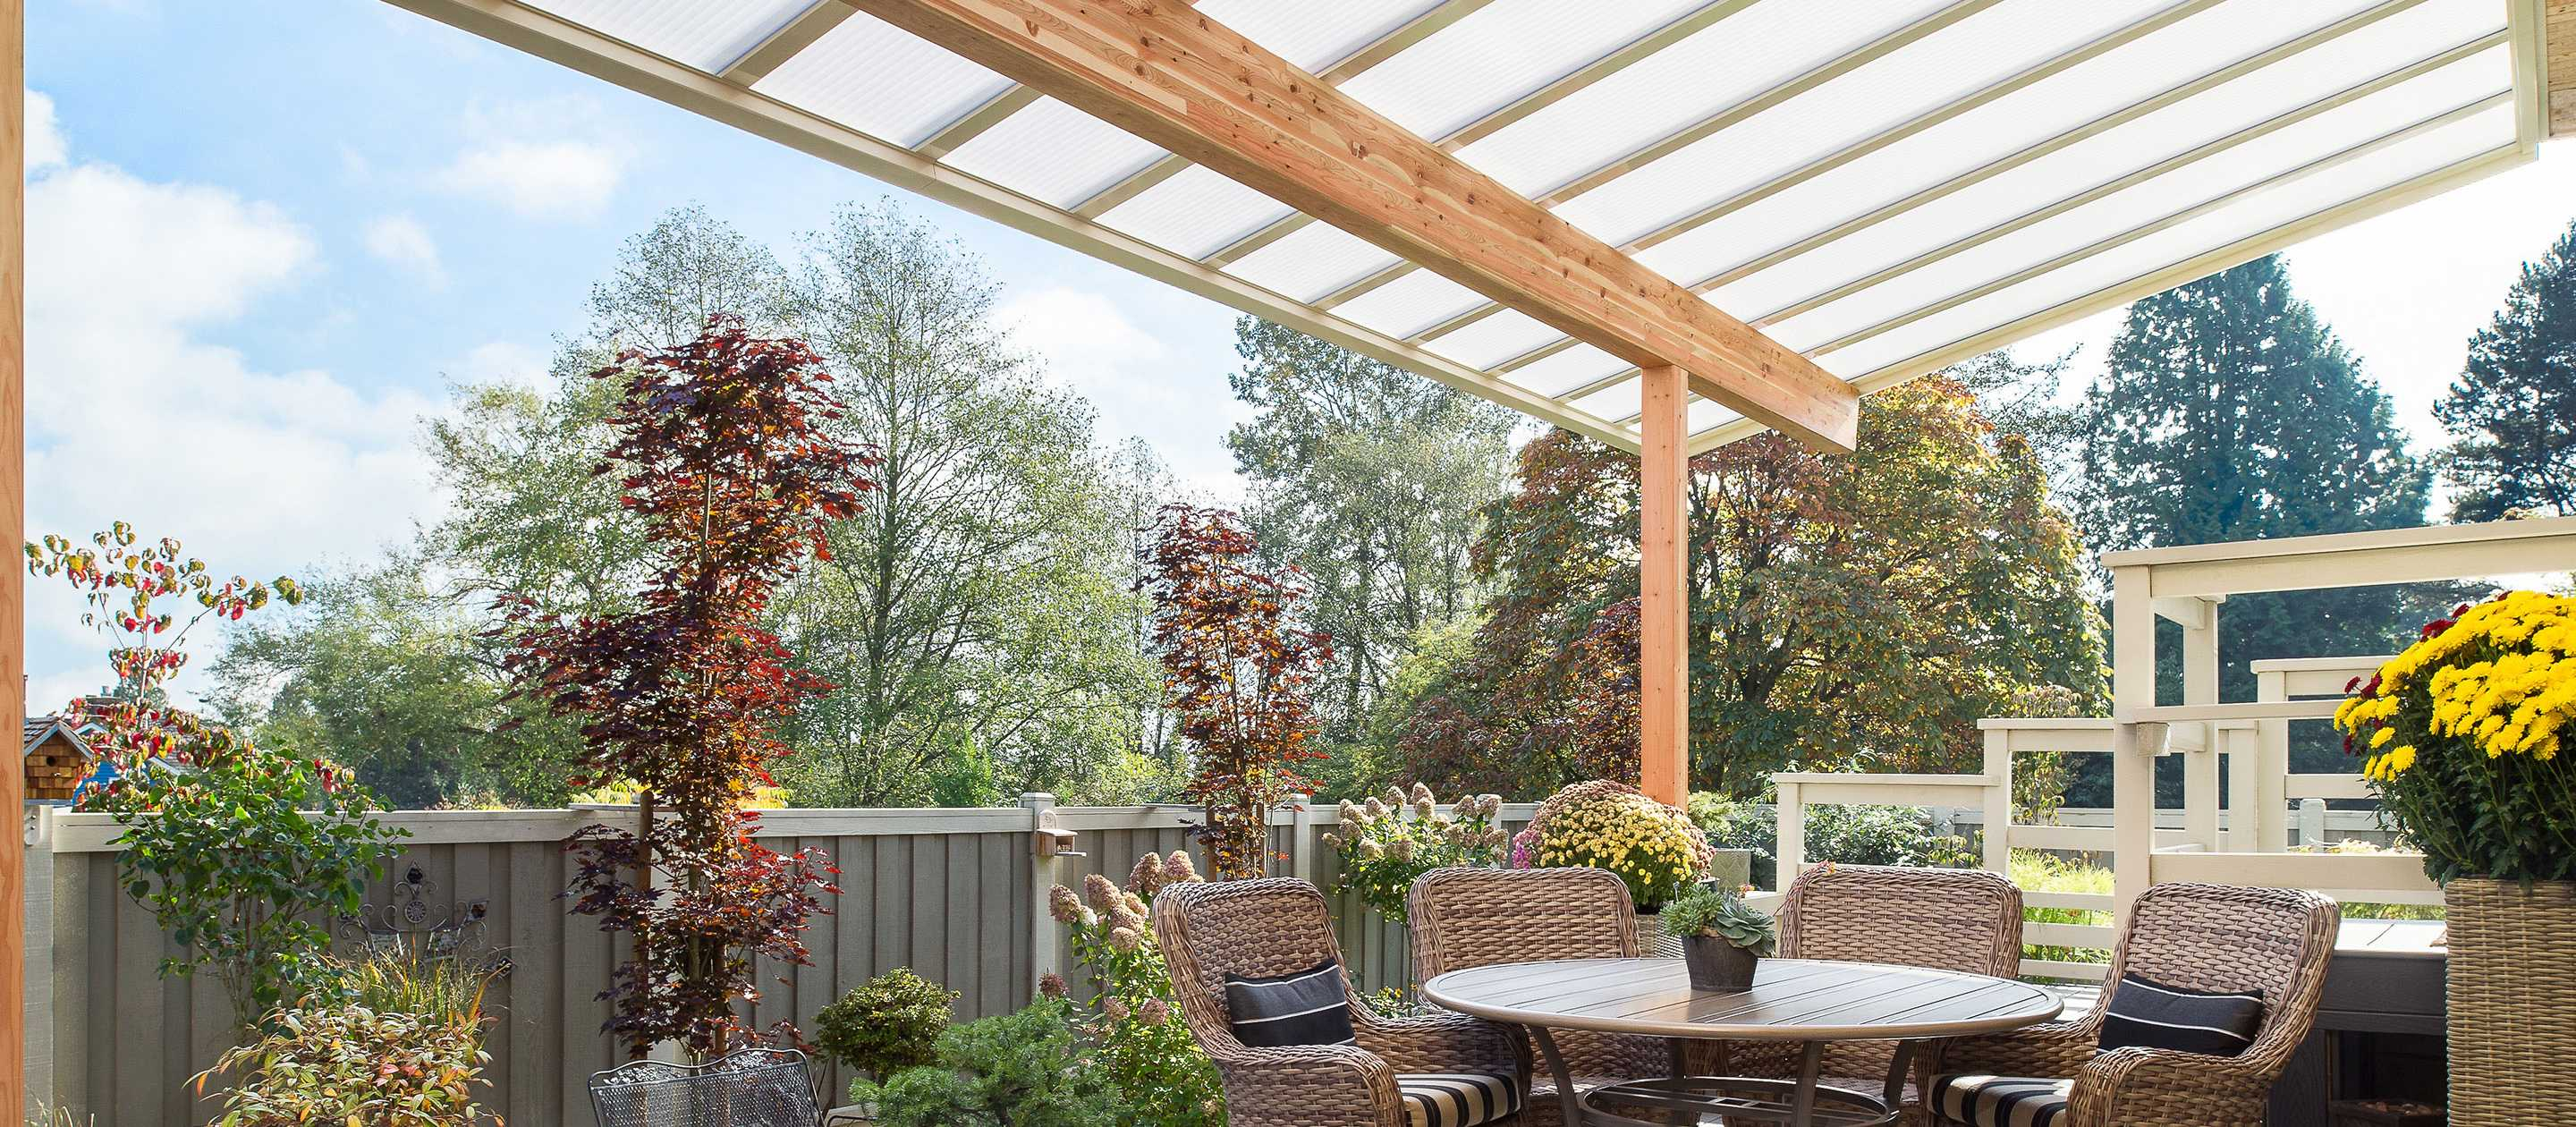 deck sun cover, glass covered pergola, glass patio cover, glass patio roof, glass roof patio, cover glass roof pergola, covered patio structures, covers for decks and patios, custom built patio covers, custom patio covers